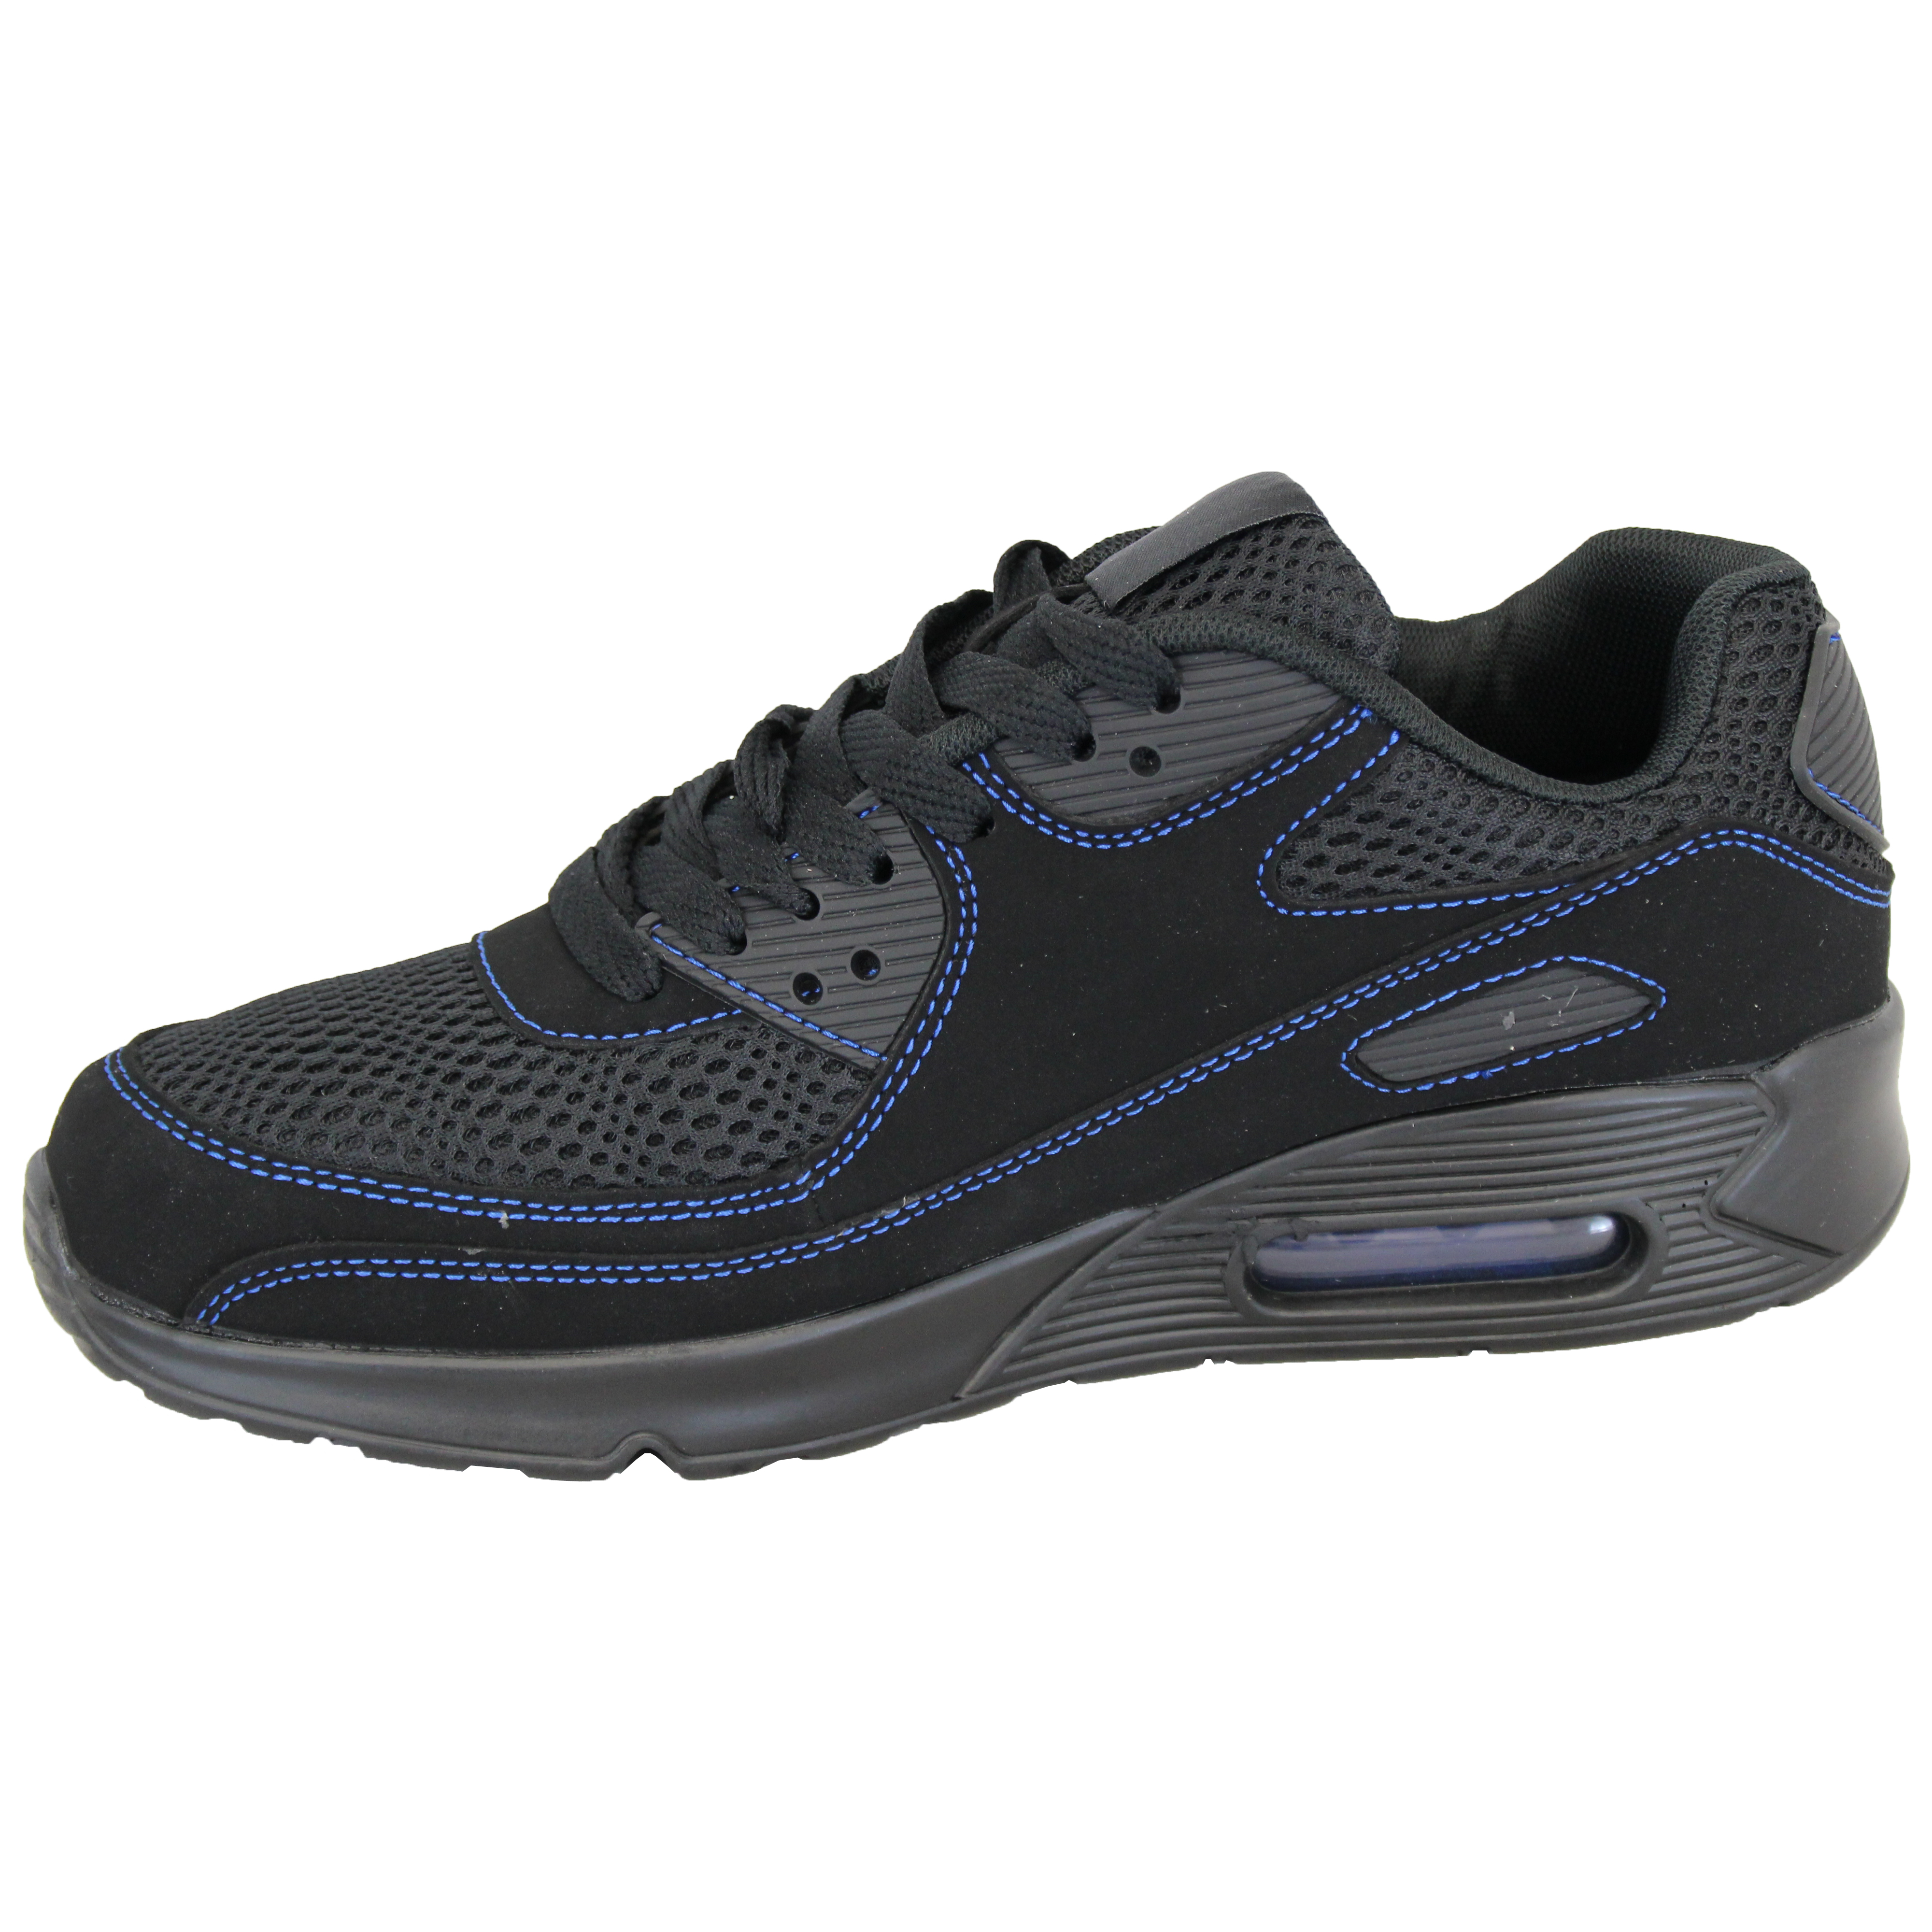 Mens-Bubble-Trainers-Lace-Up-Running-Shoes-Mesh-Jogging-Sports-Gym-Casual-New thumbnail 7